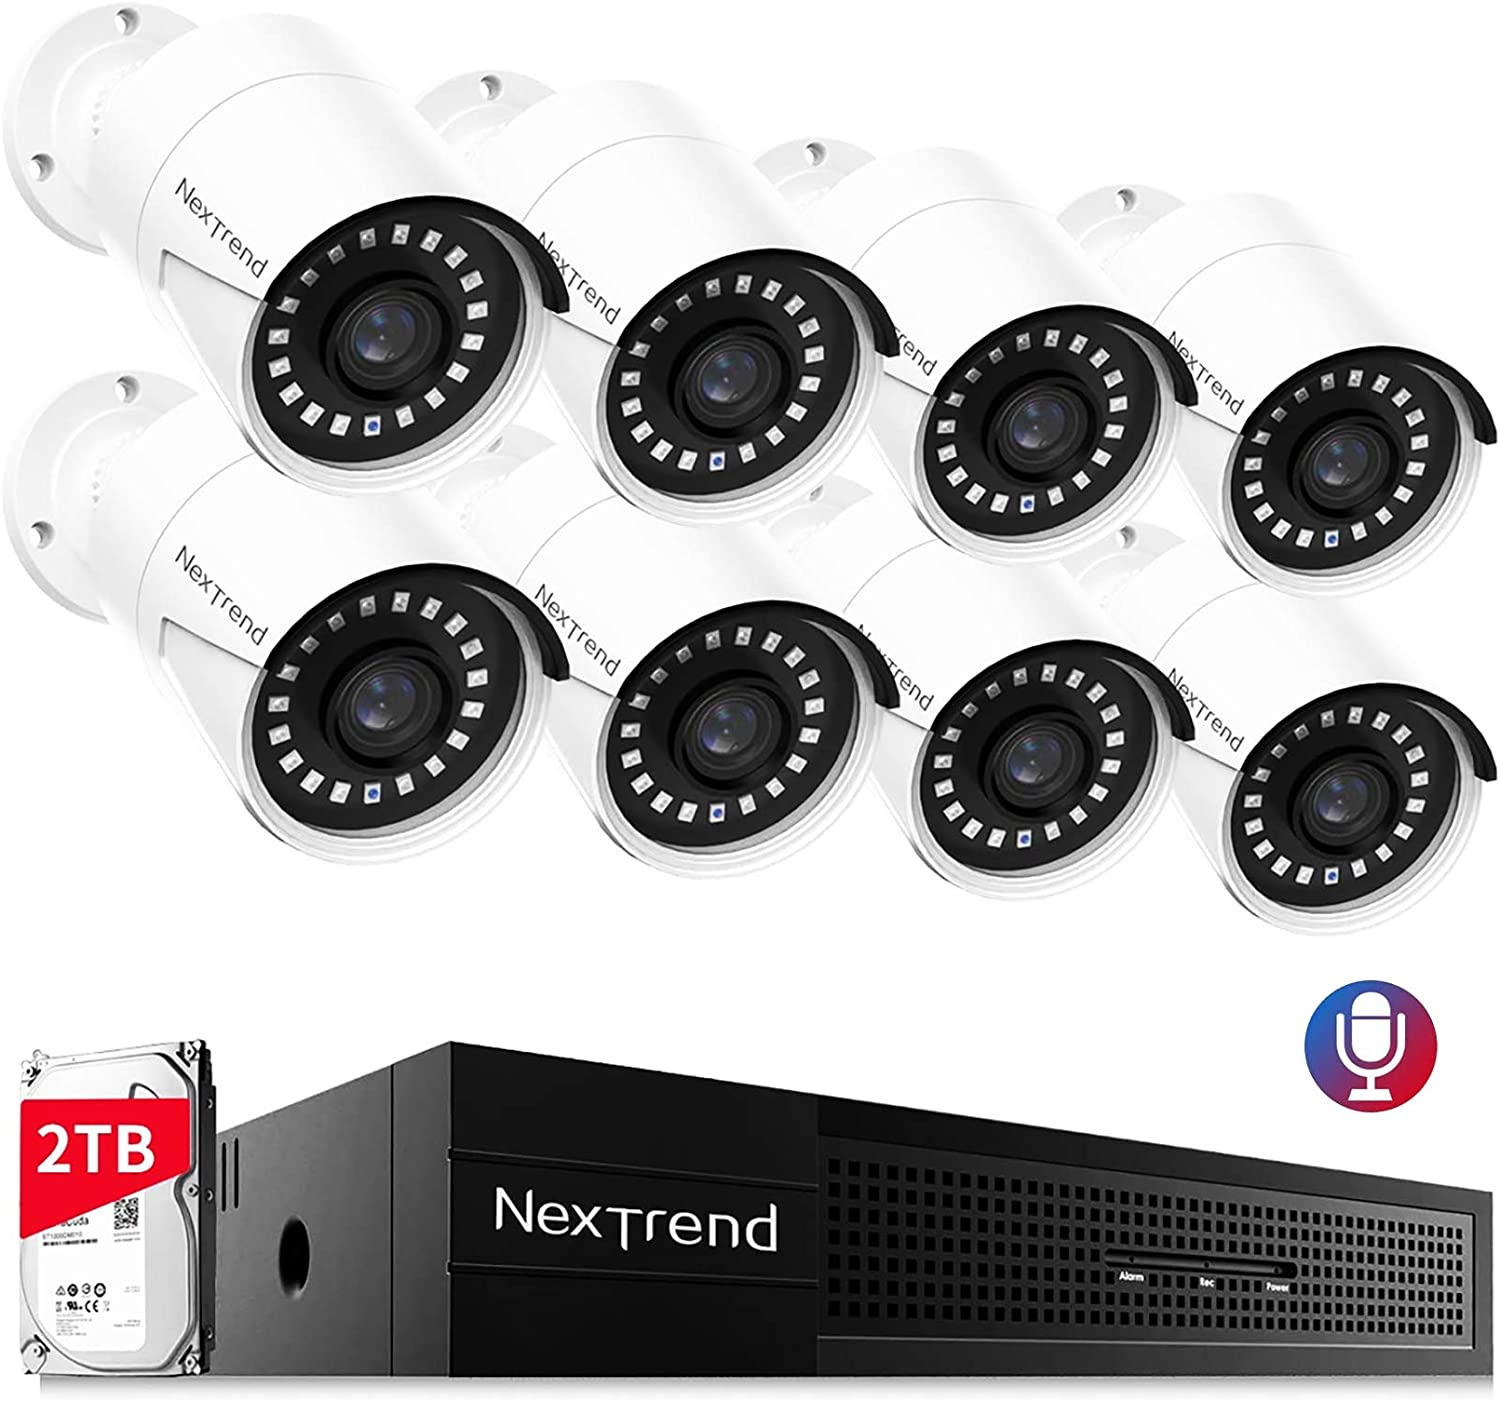 POE Ring Security Camera System - NexTrend Smart Home Security Camera System 8pcs 5MP HD Surveillance Cameras Day&Night Vision with 2TB Hard Drive Outdoor Video Audio Camera System Plug and Play